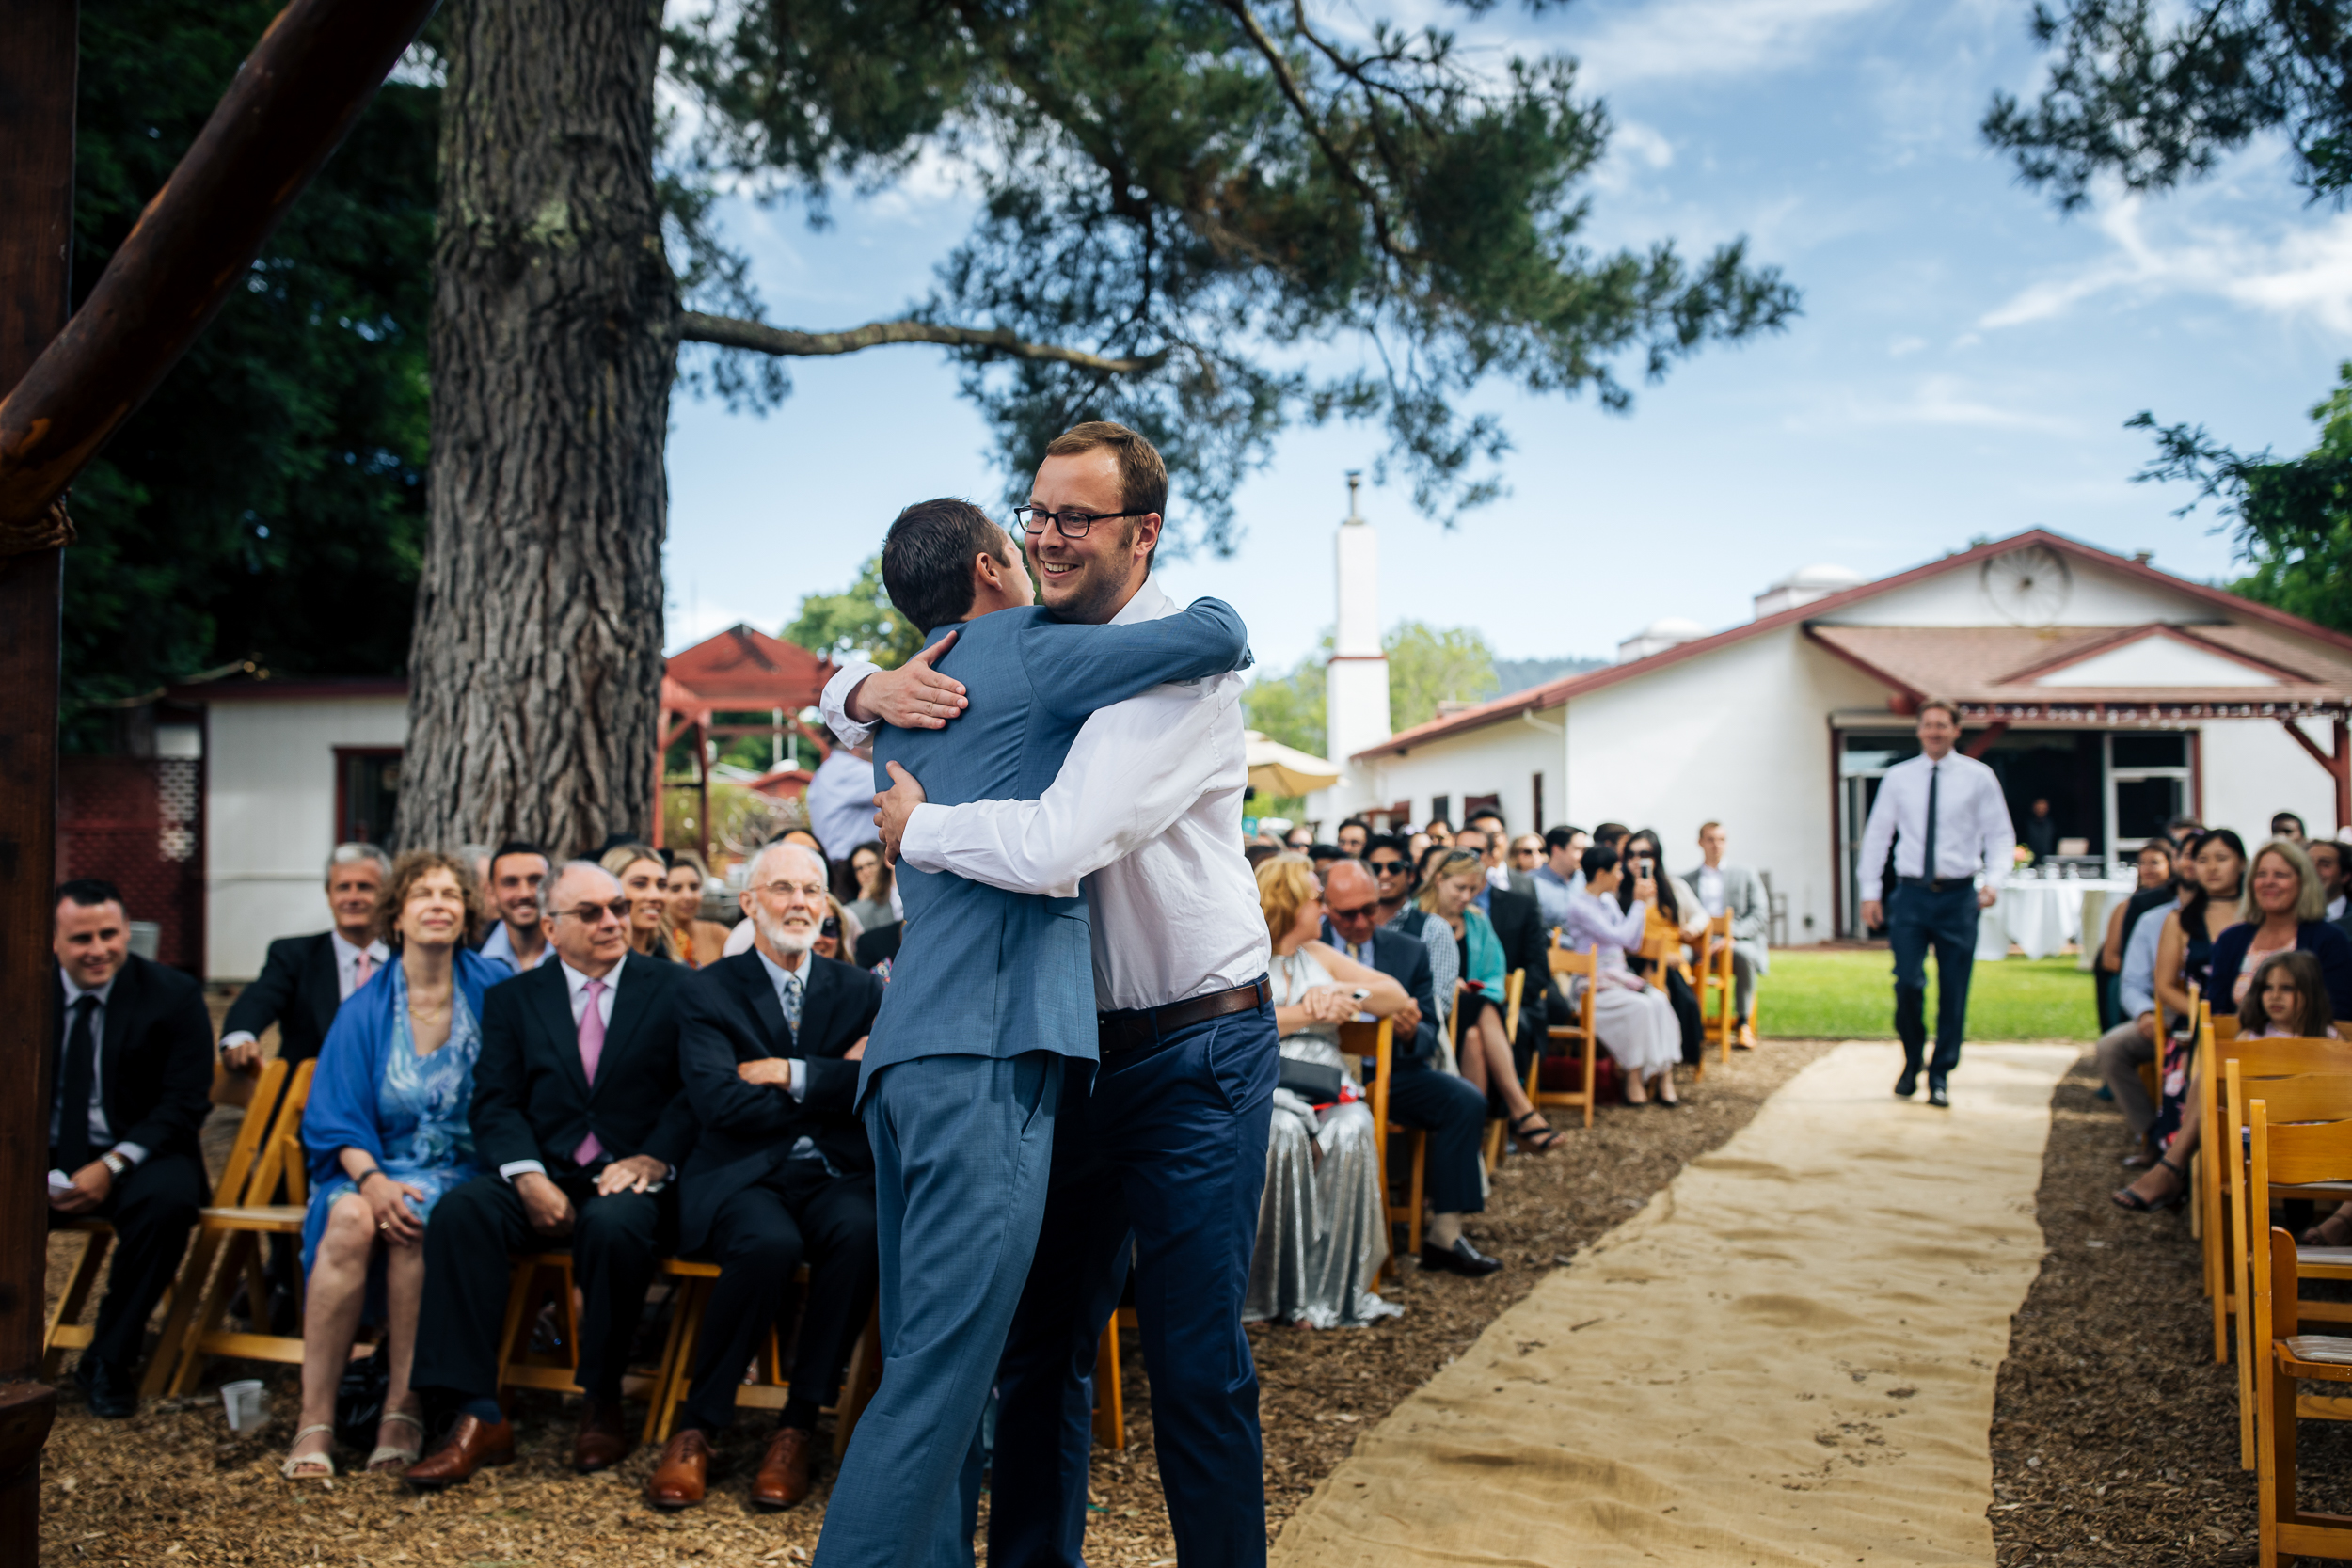 Rancho Nicasio Wedding 2018-147.jpg